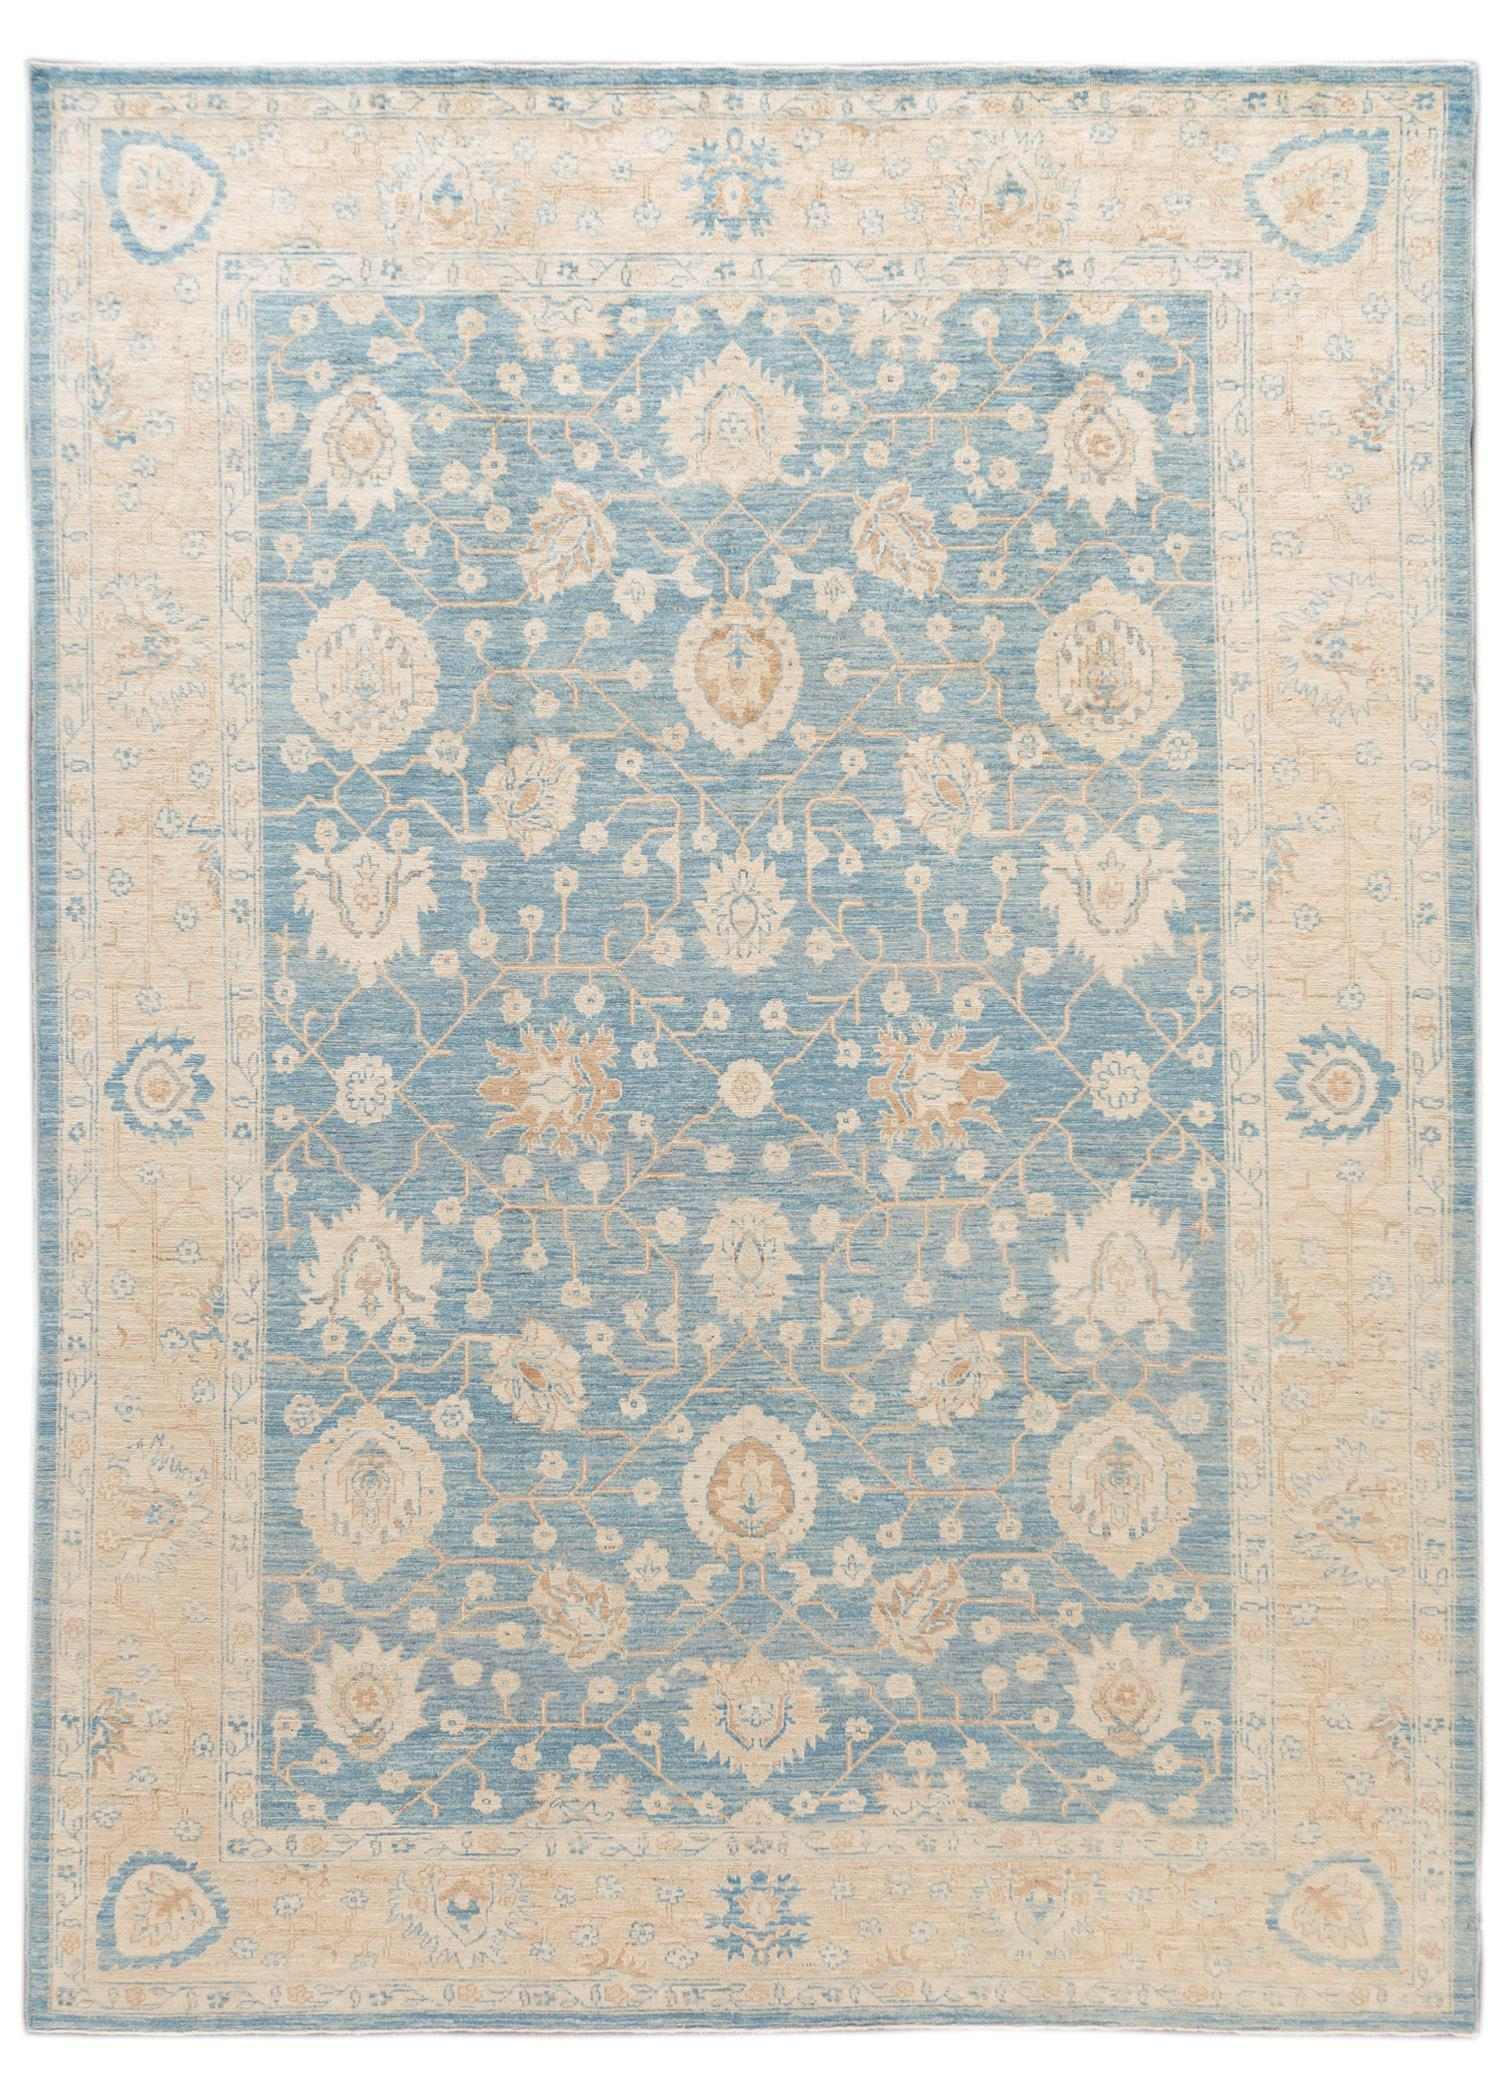 Contemporary Blue and Ivory Oushak-Style Wool Area Rug 9' x 12'